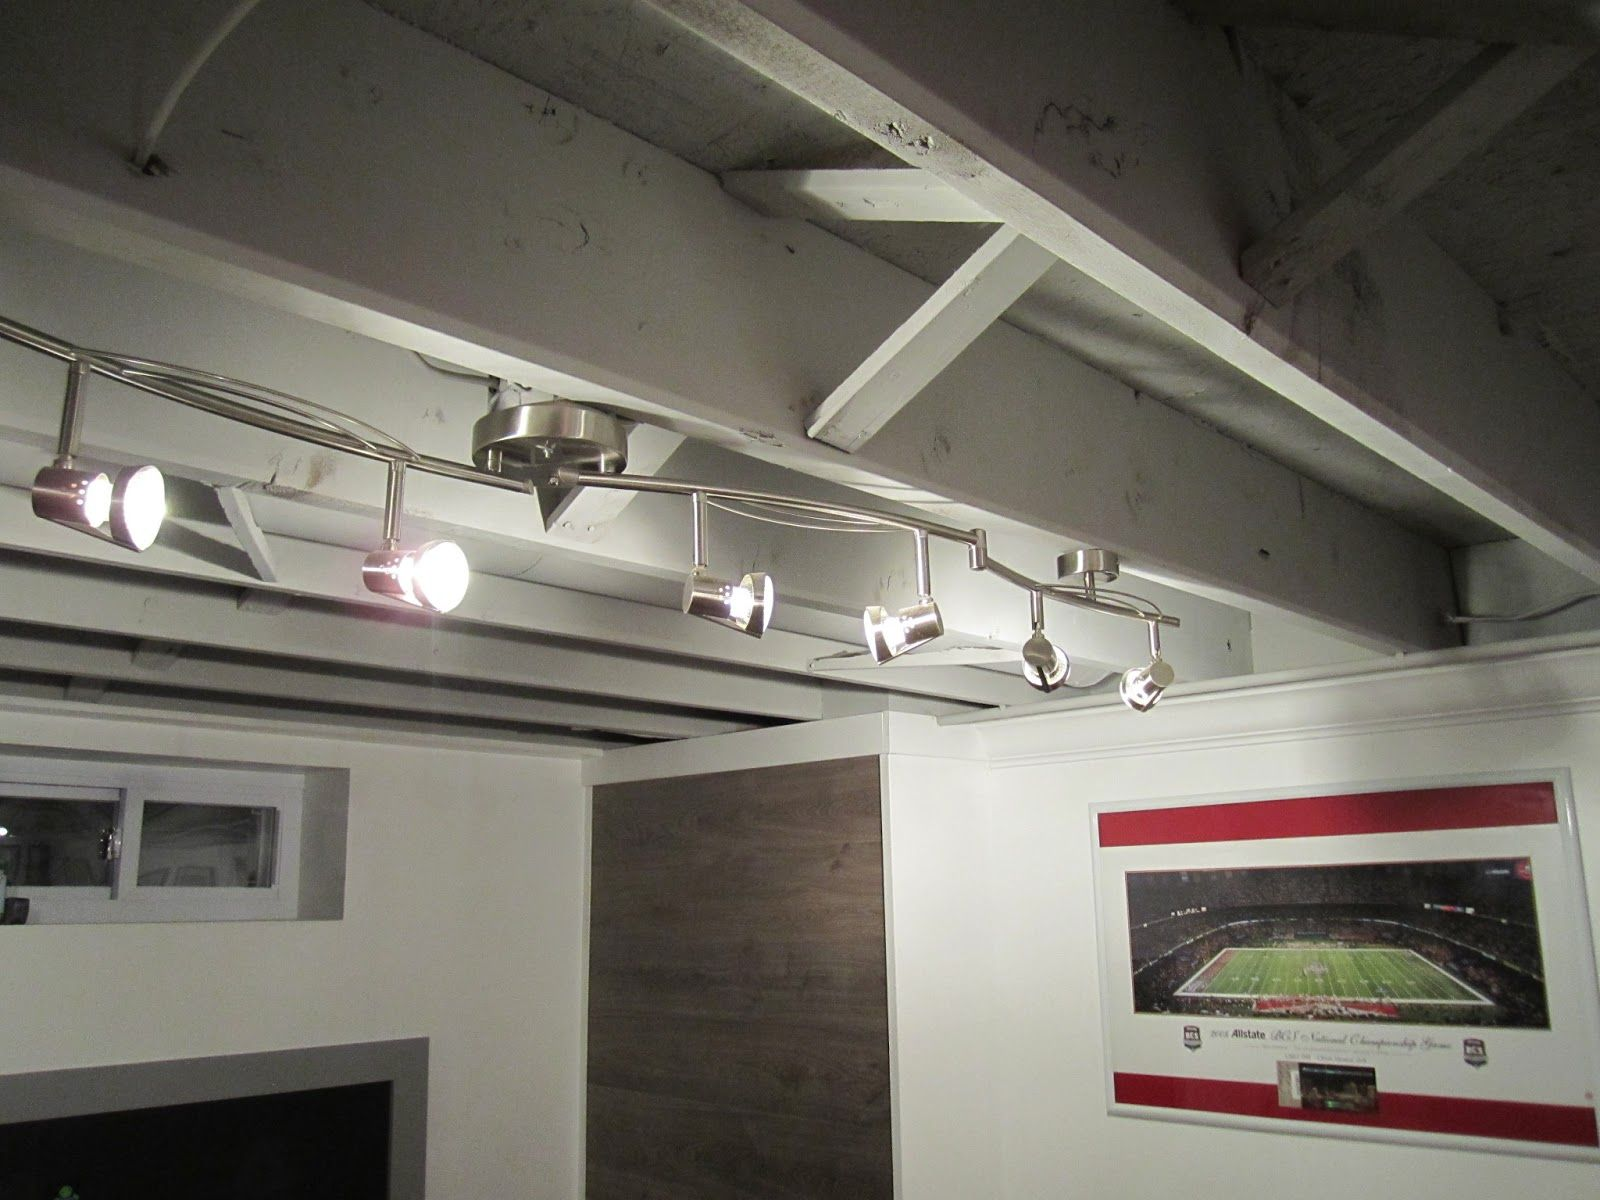 Best Unfinished Basement Ceiling Ideas On A Budget Basement Ceiling Basement Lighting